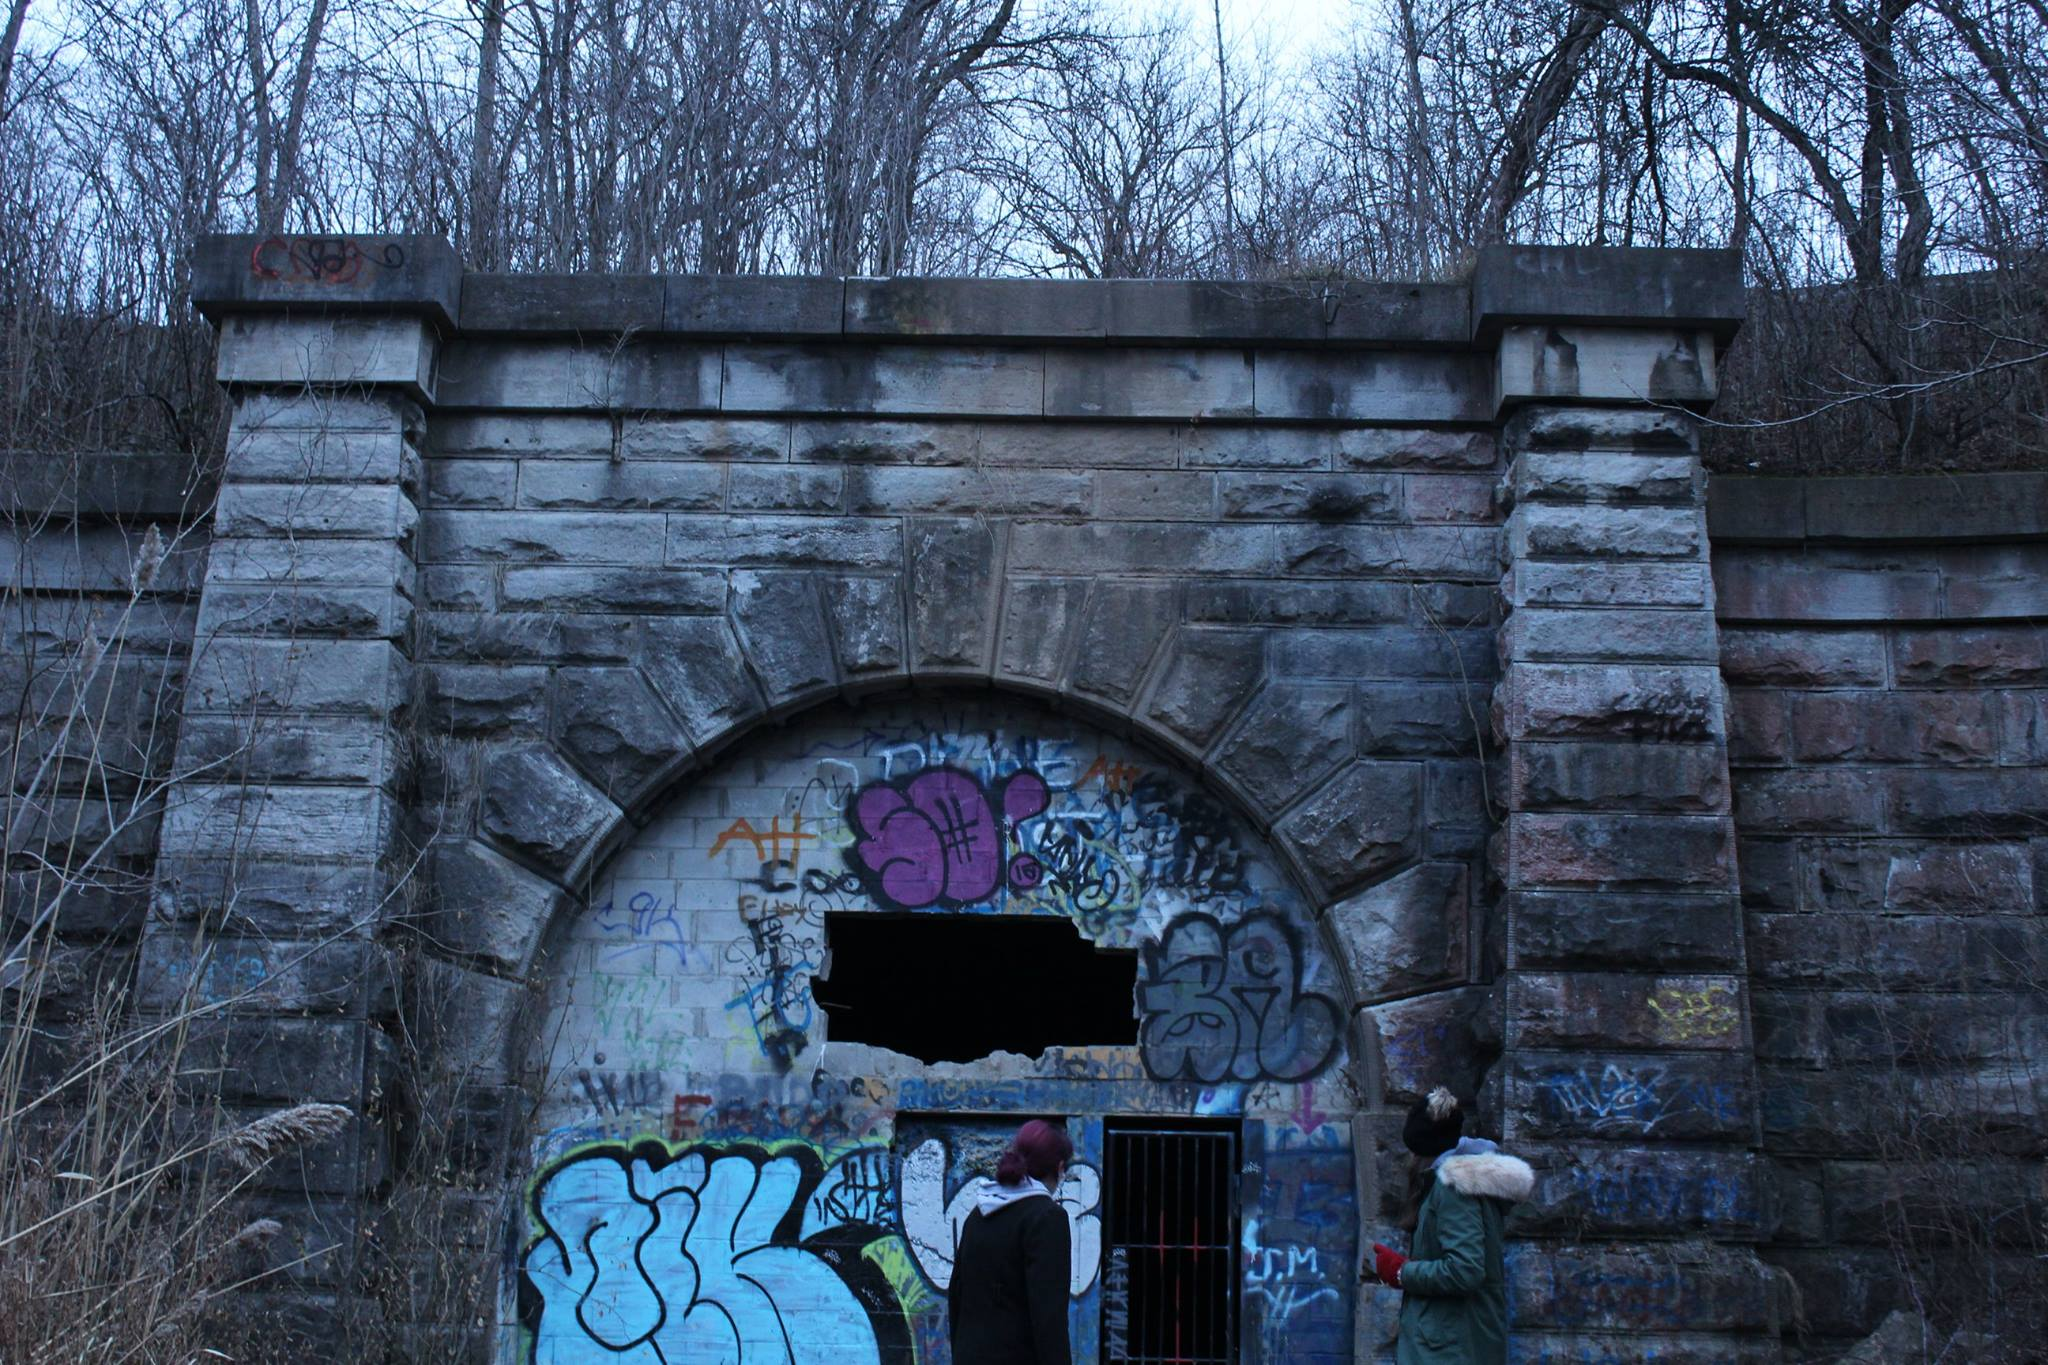 Exploring the Blue Ghost Tunnel in St. Catharines